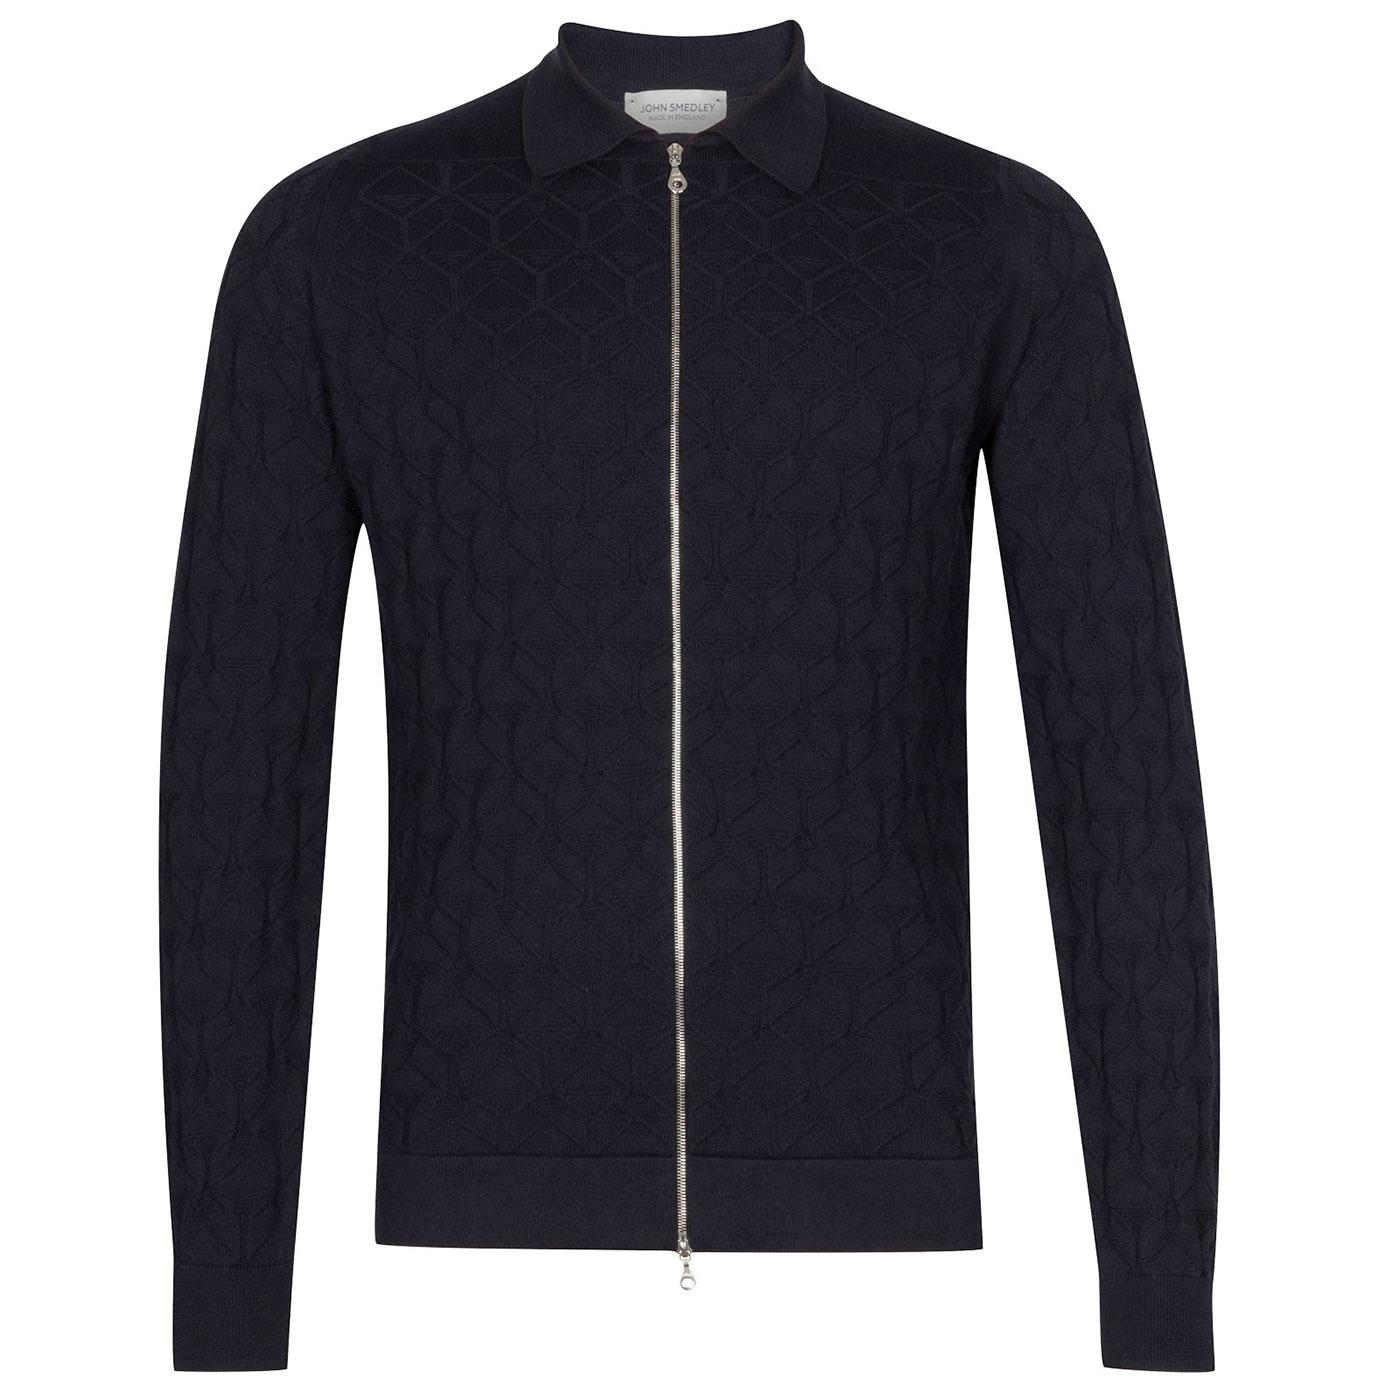 Terrain JOHN SMEDLEY Geo Knit Zip Through Cardigan